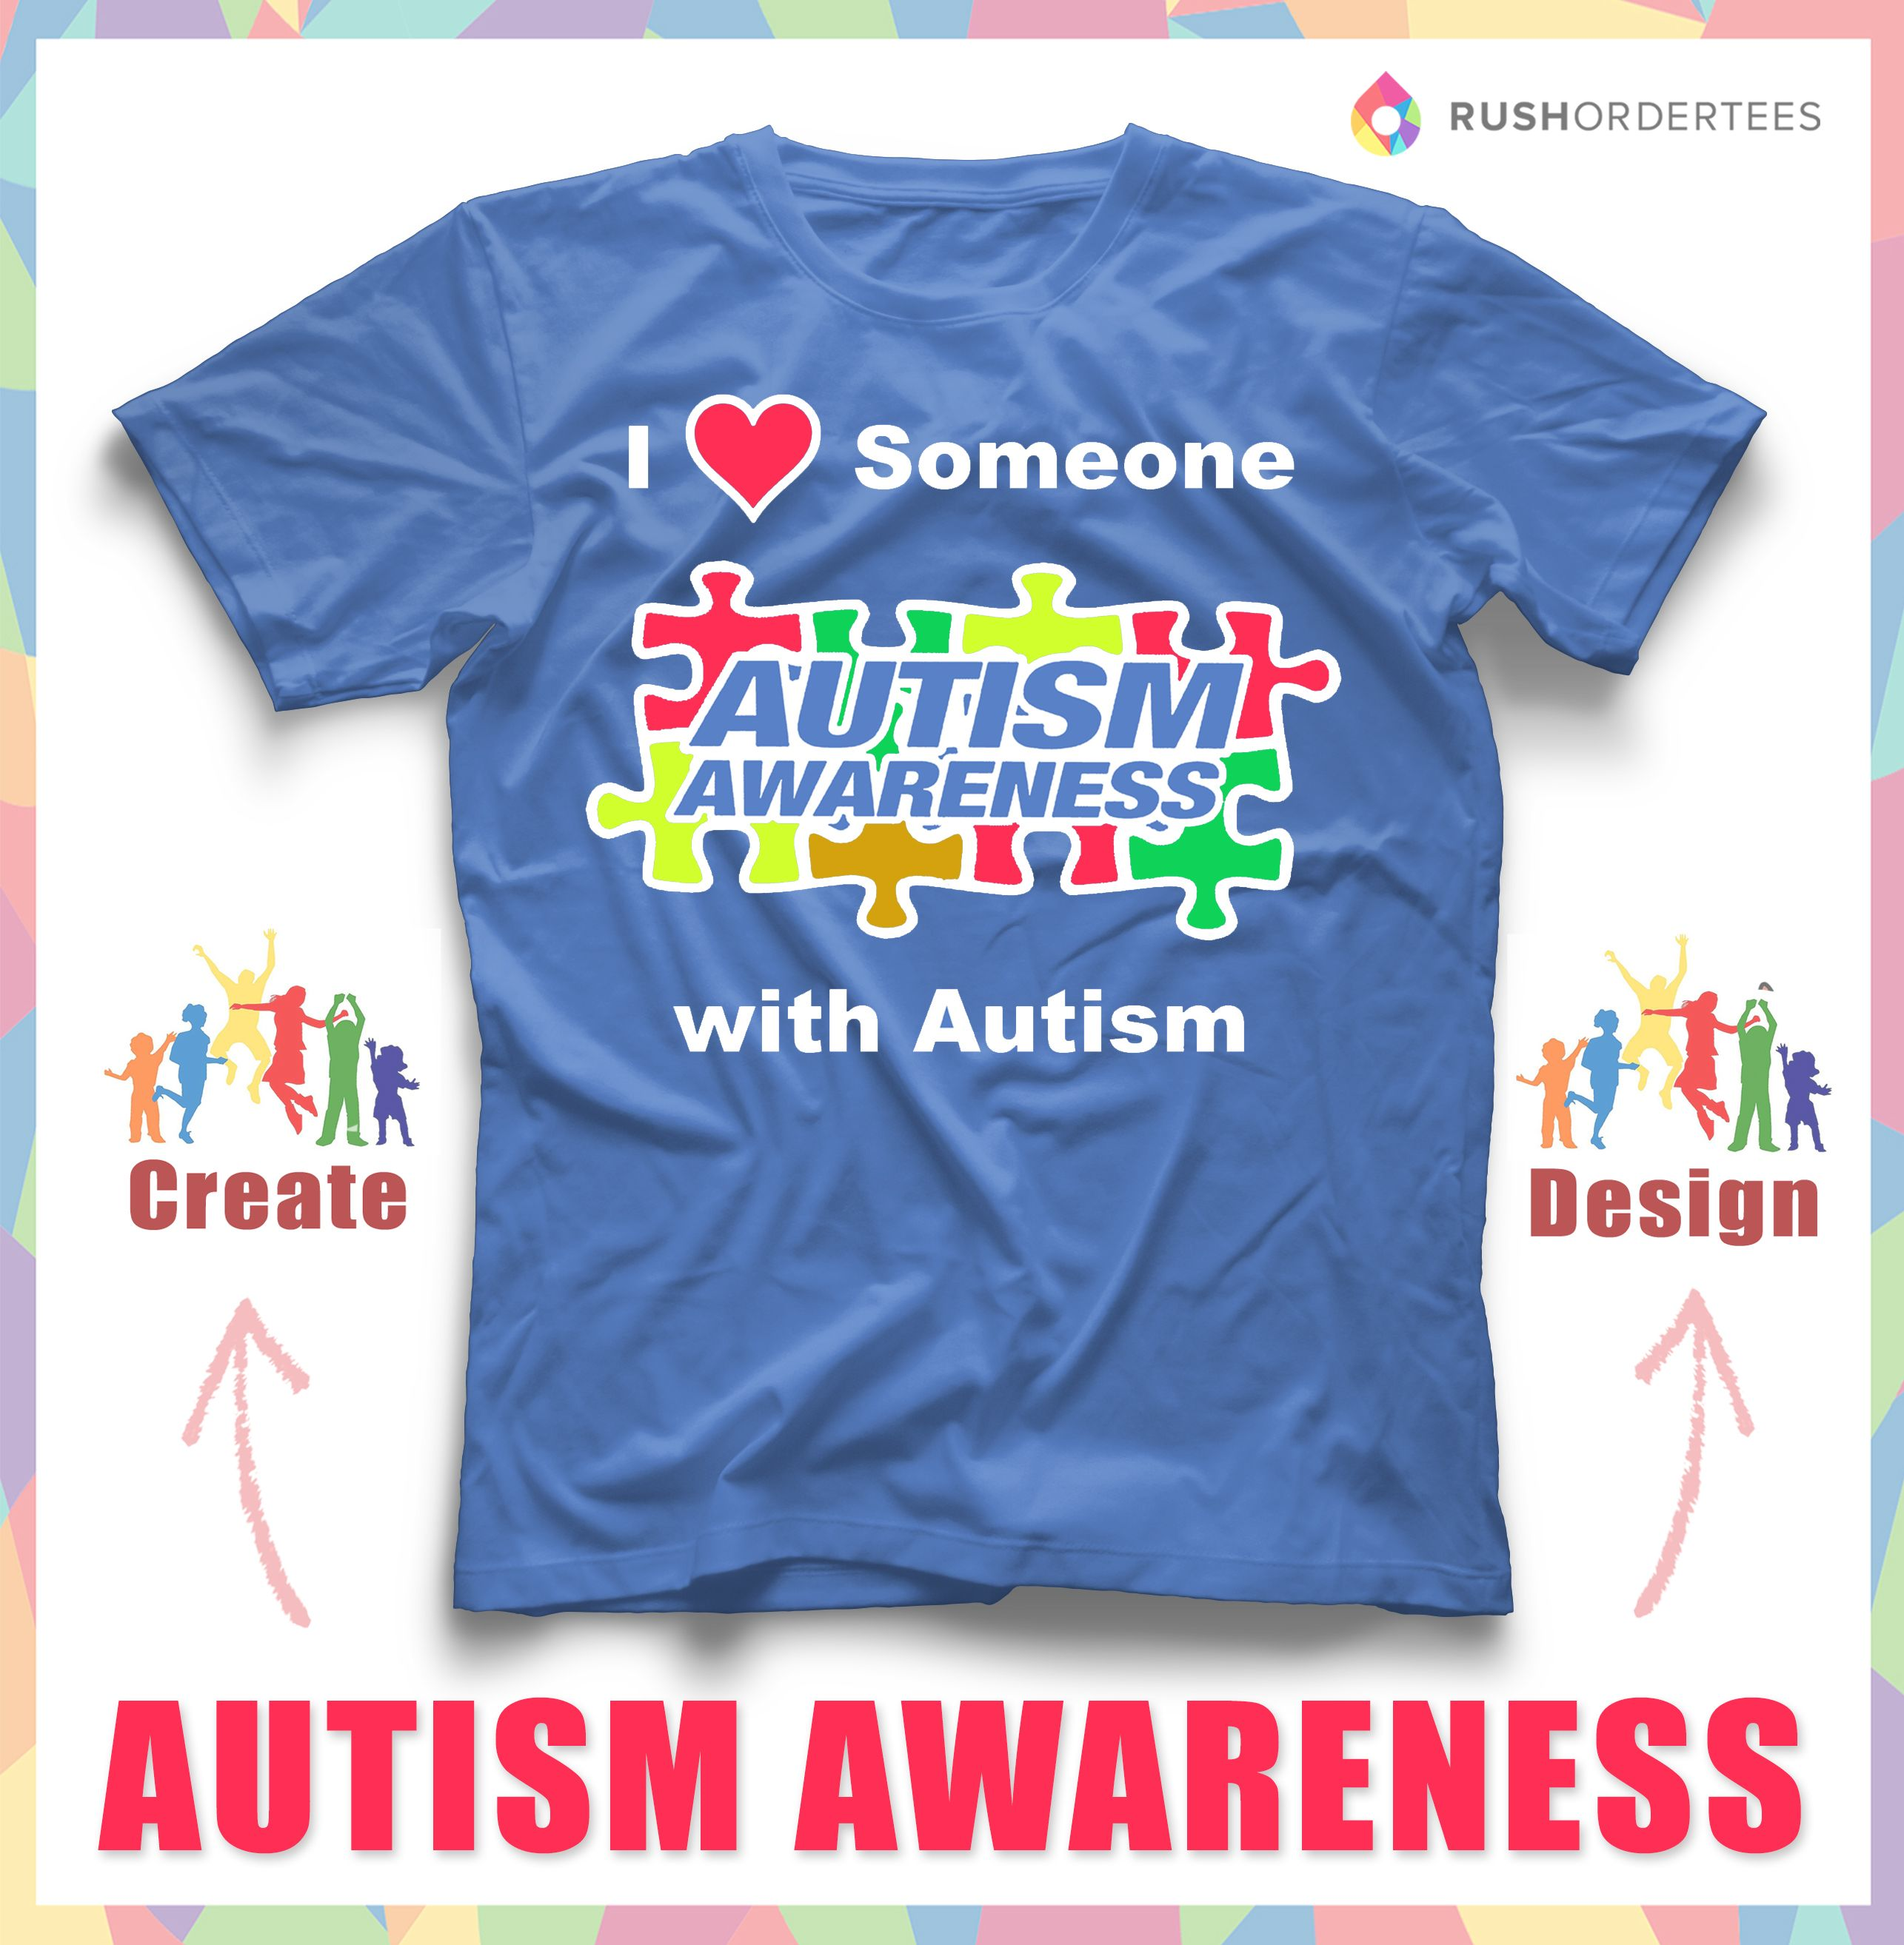 I Love Someone With Autism Spread Awareness By Wearing Custom Made